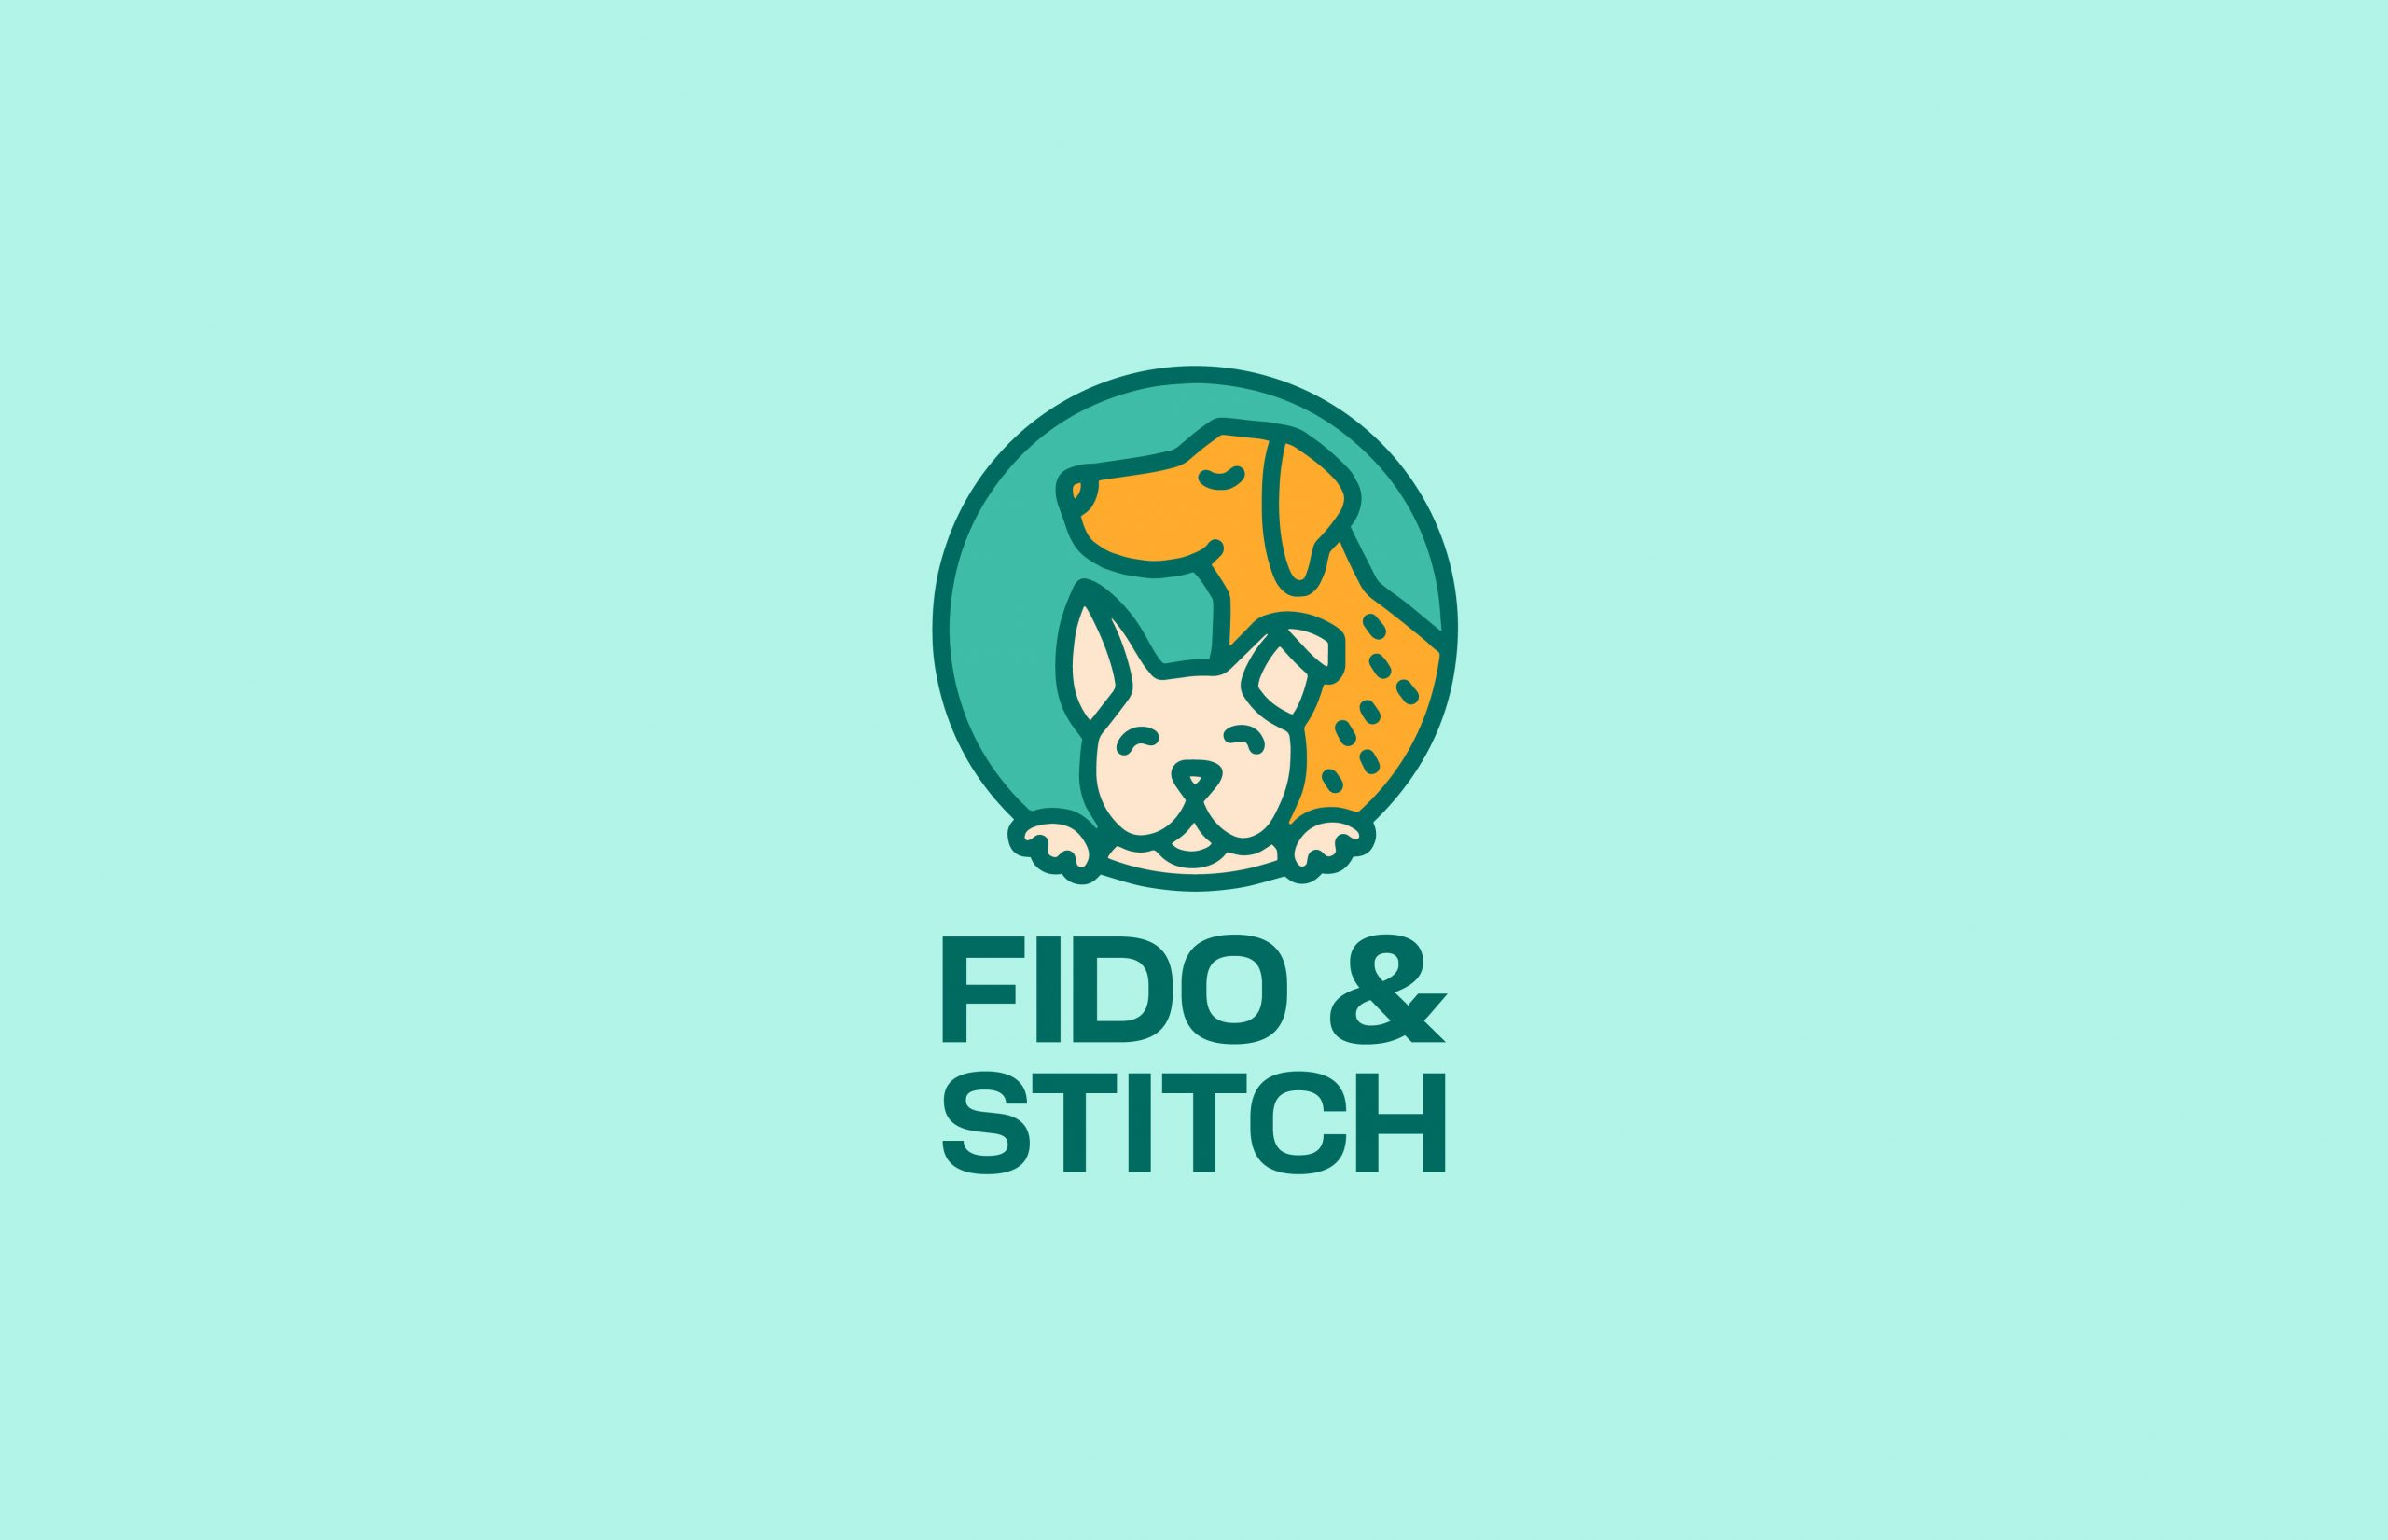 Two dogs, Fido and Stitch